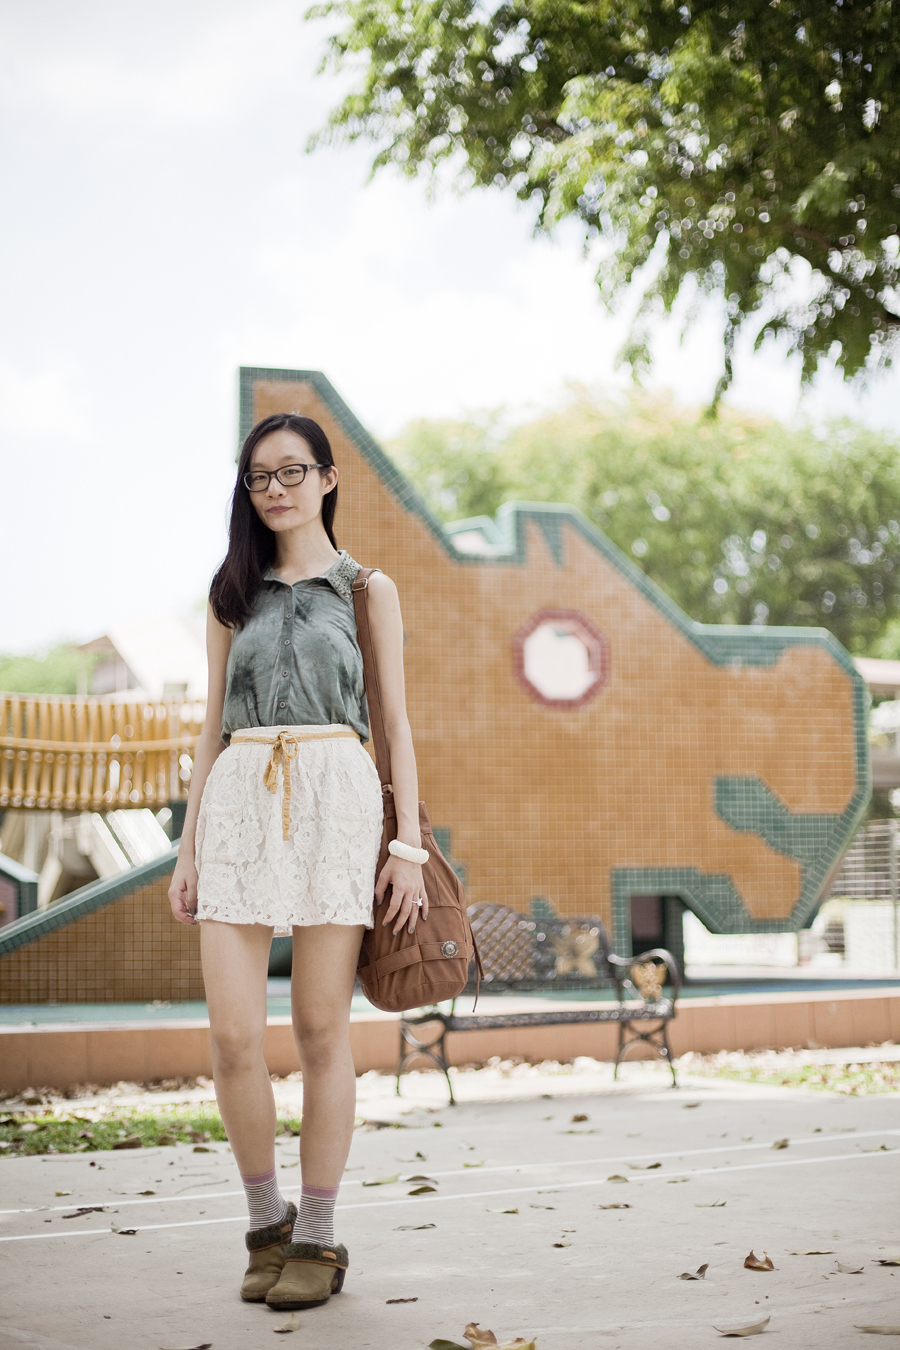 Outfit #ootd details: Urban Outfitters studden collar sleeveless green tie-dye top, Forever 21 cream lace skirt, Accessorize striped socks, Merrell knit luxe clogs in olive green, Gap prescription glasses, Gentle Fawn brown leather hobo bag.